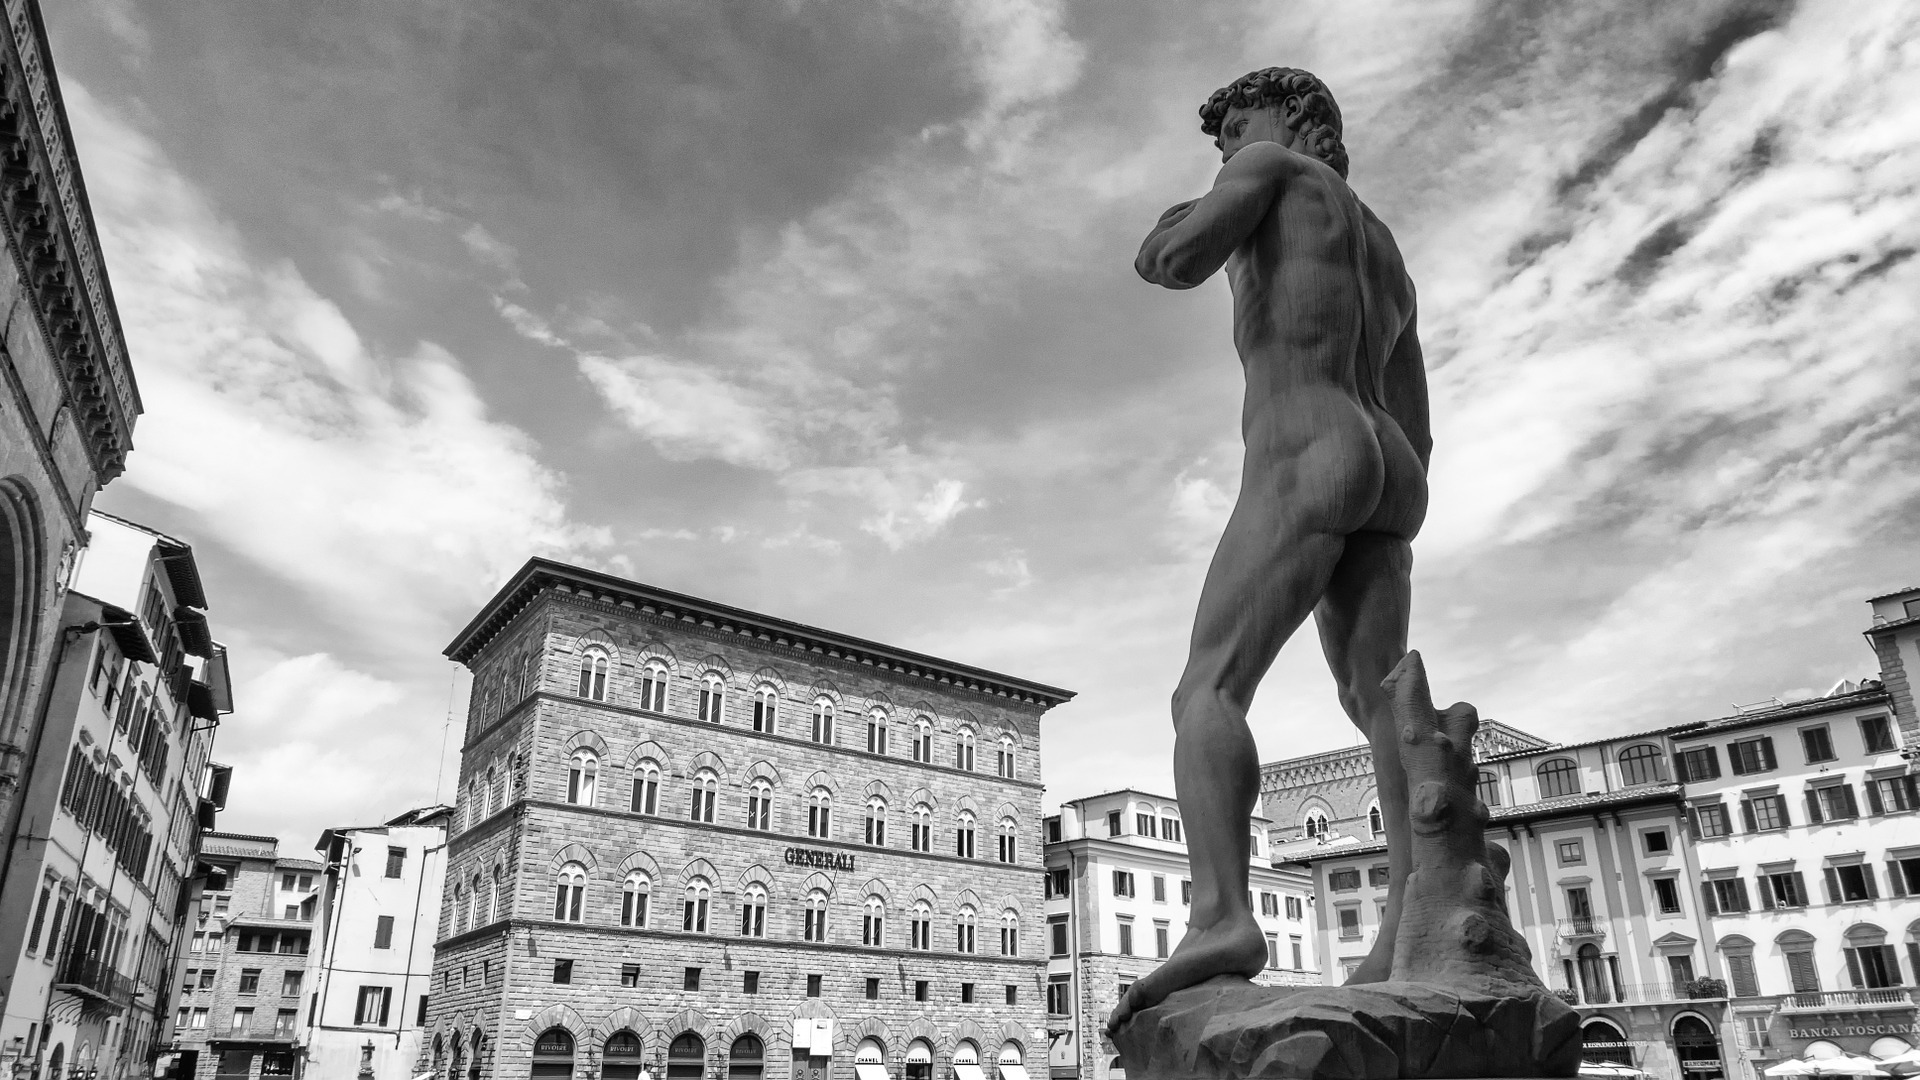 The Statue of David in Florence